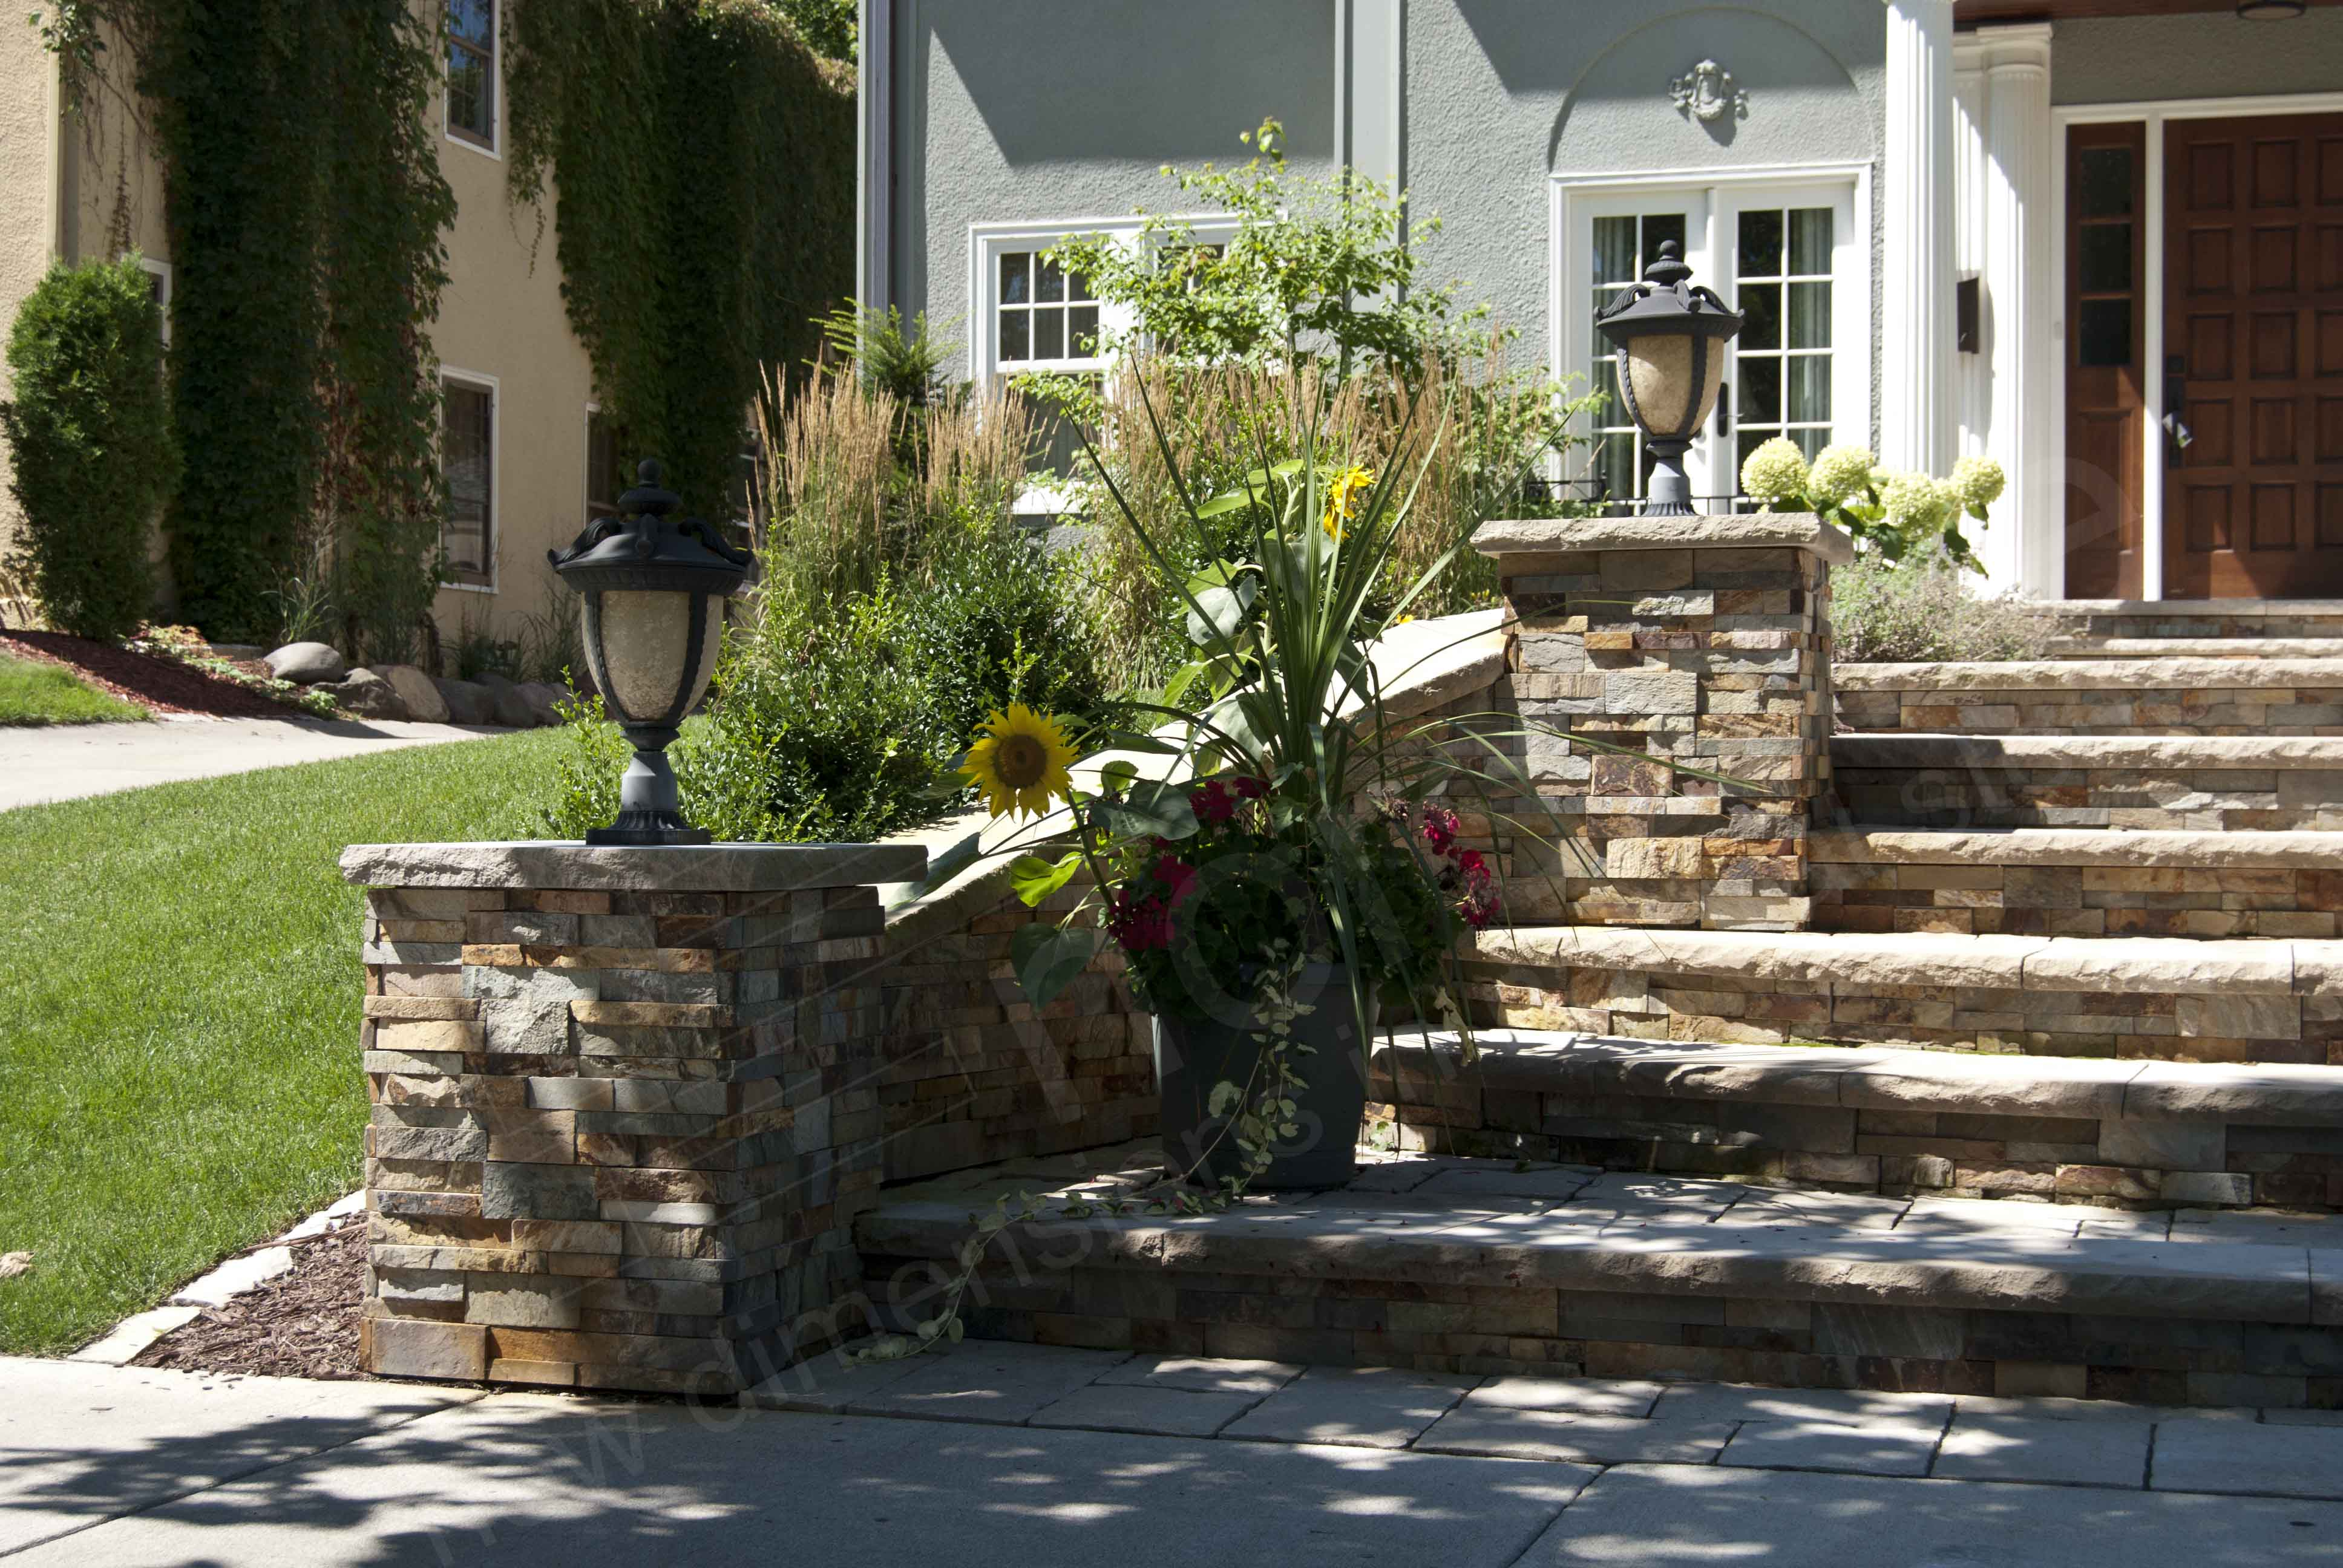 Norstone XL Series Ochre Rock Panel on entryway steps and retaining wall